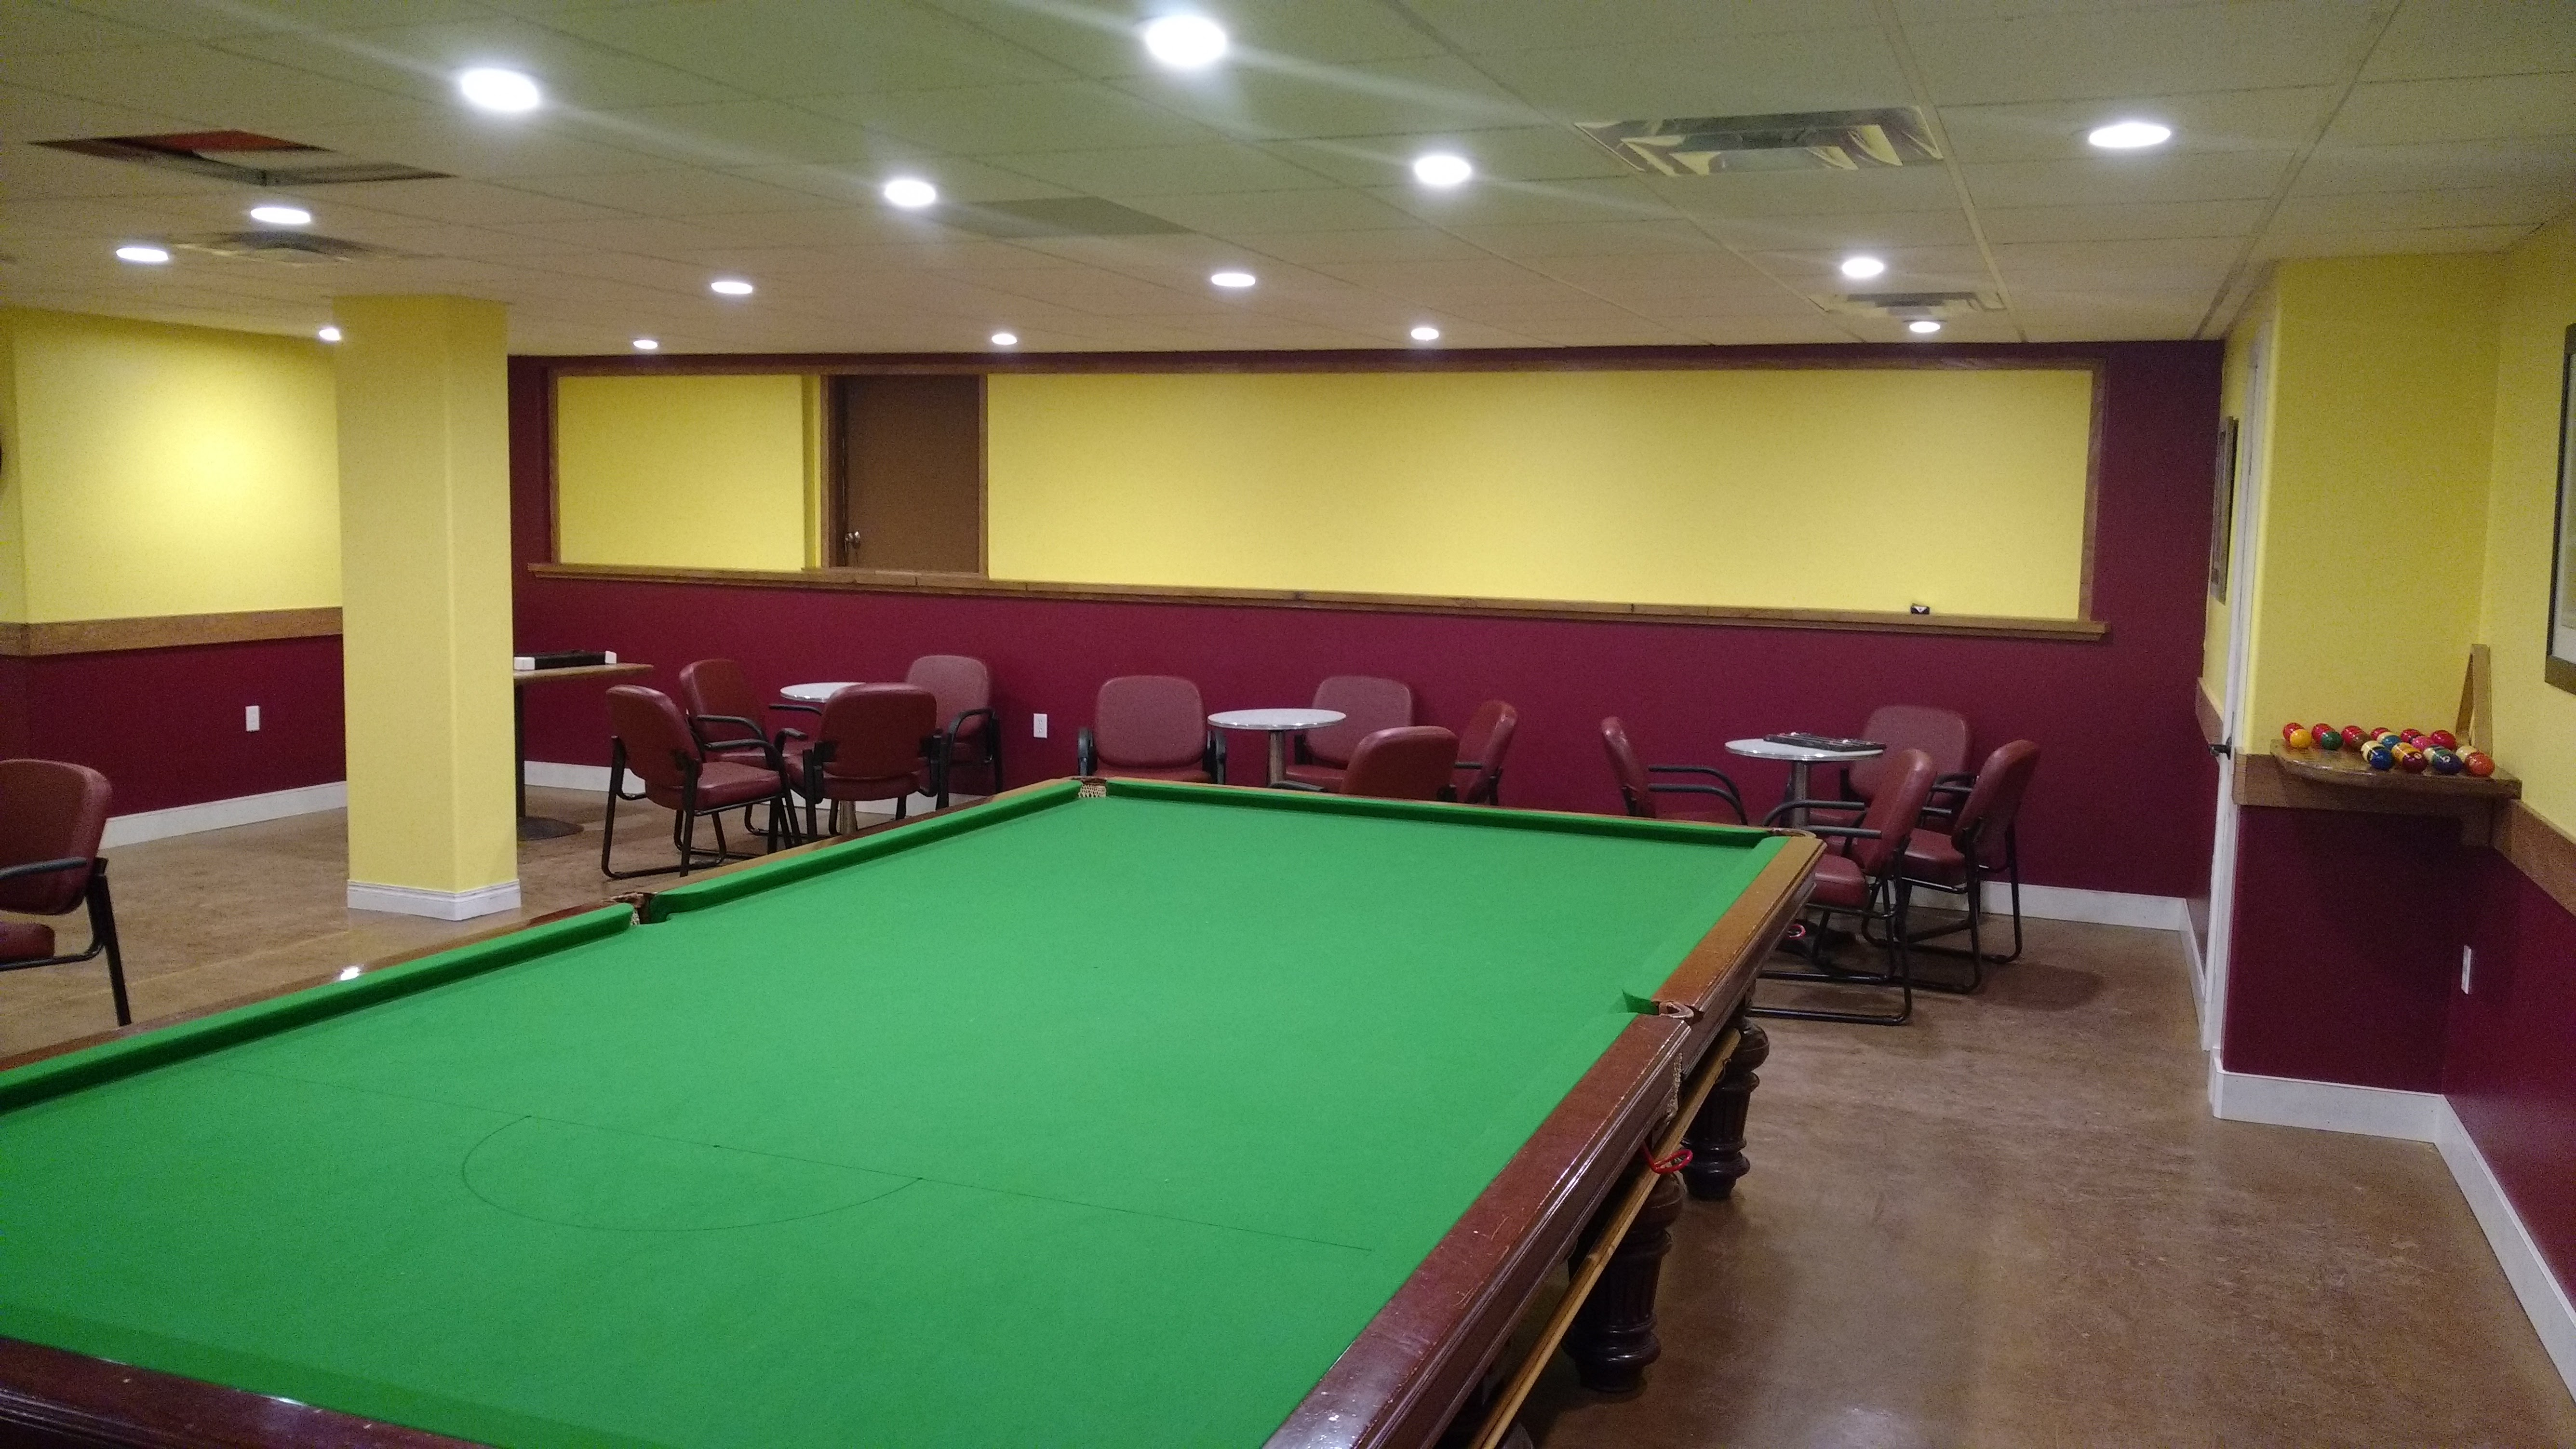 Seating in Pool Table area